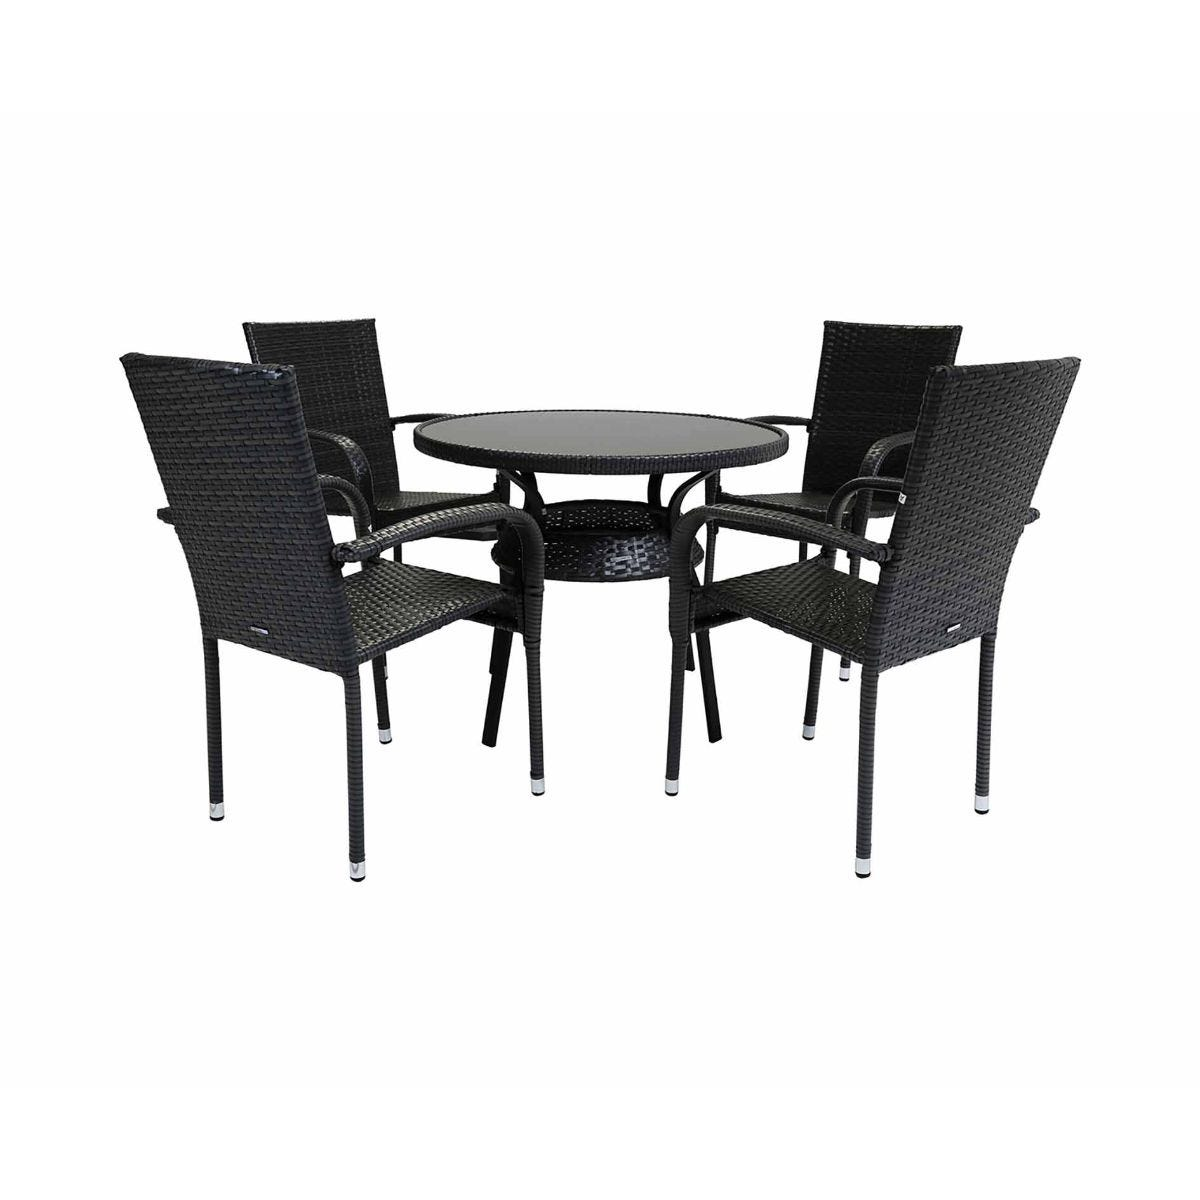 Charles Bentley Amalfi 4 Seater Round Rattan Garden Dining Set, Grey